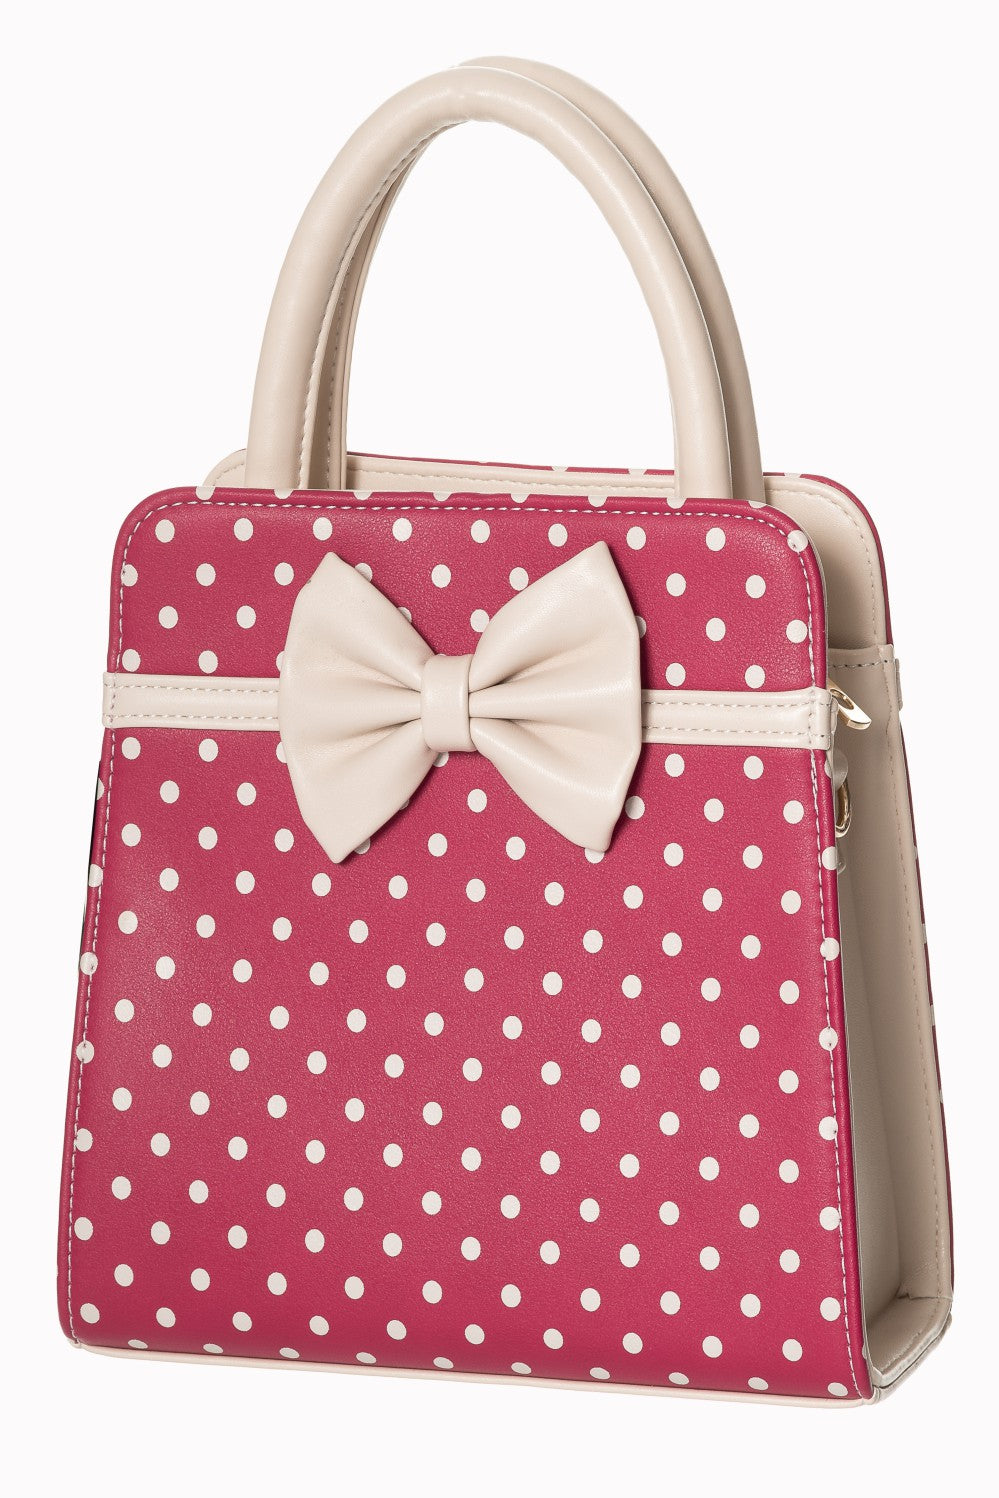 Carla Dark pink and white Handbag